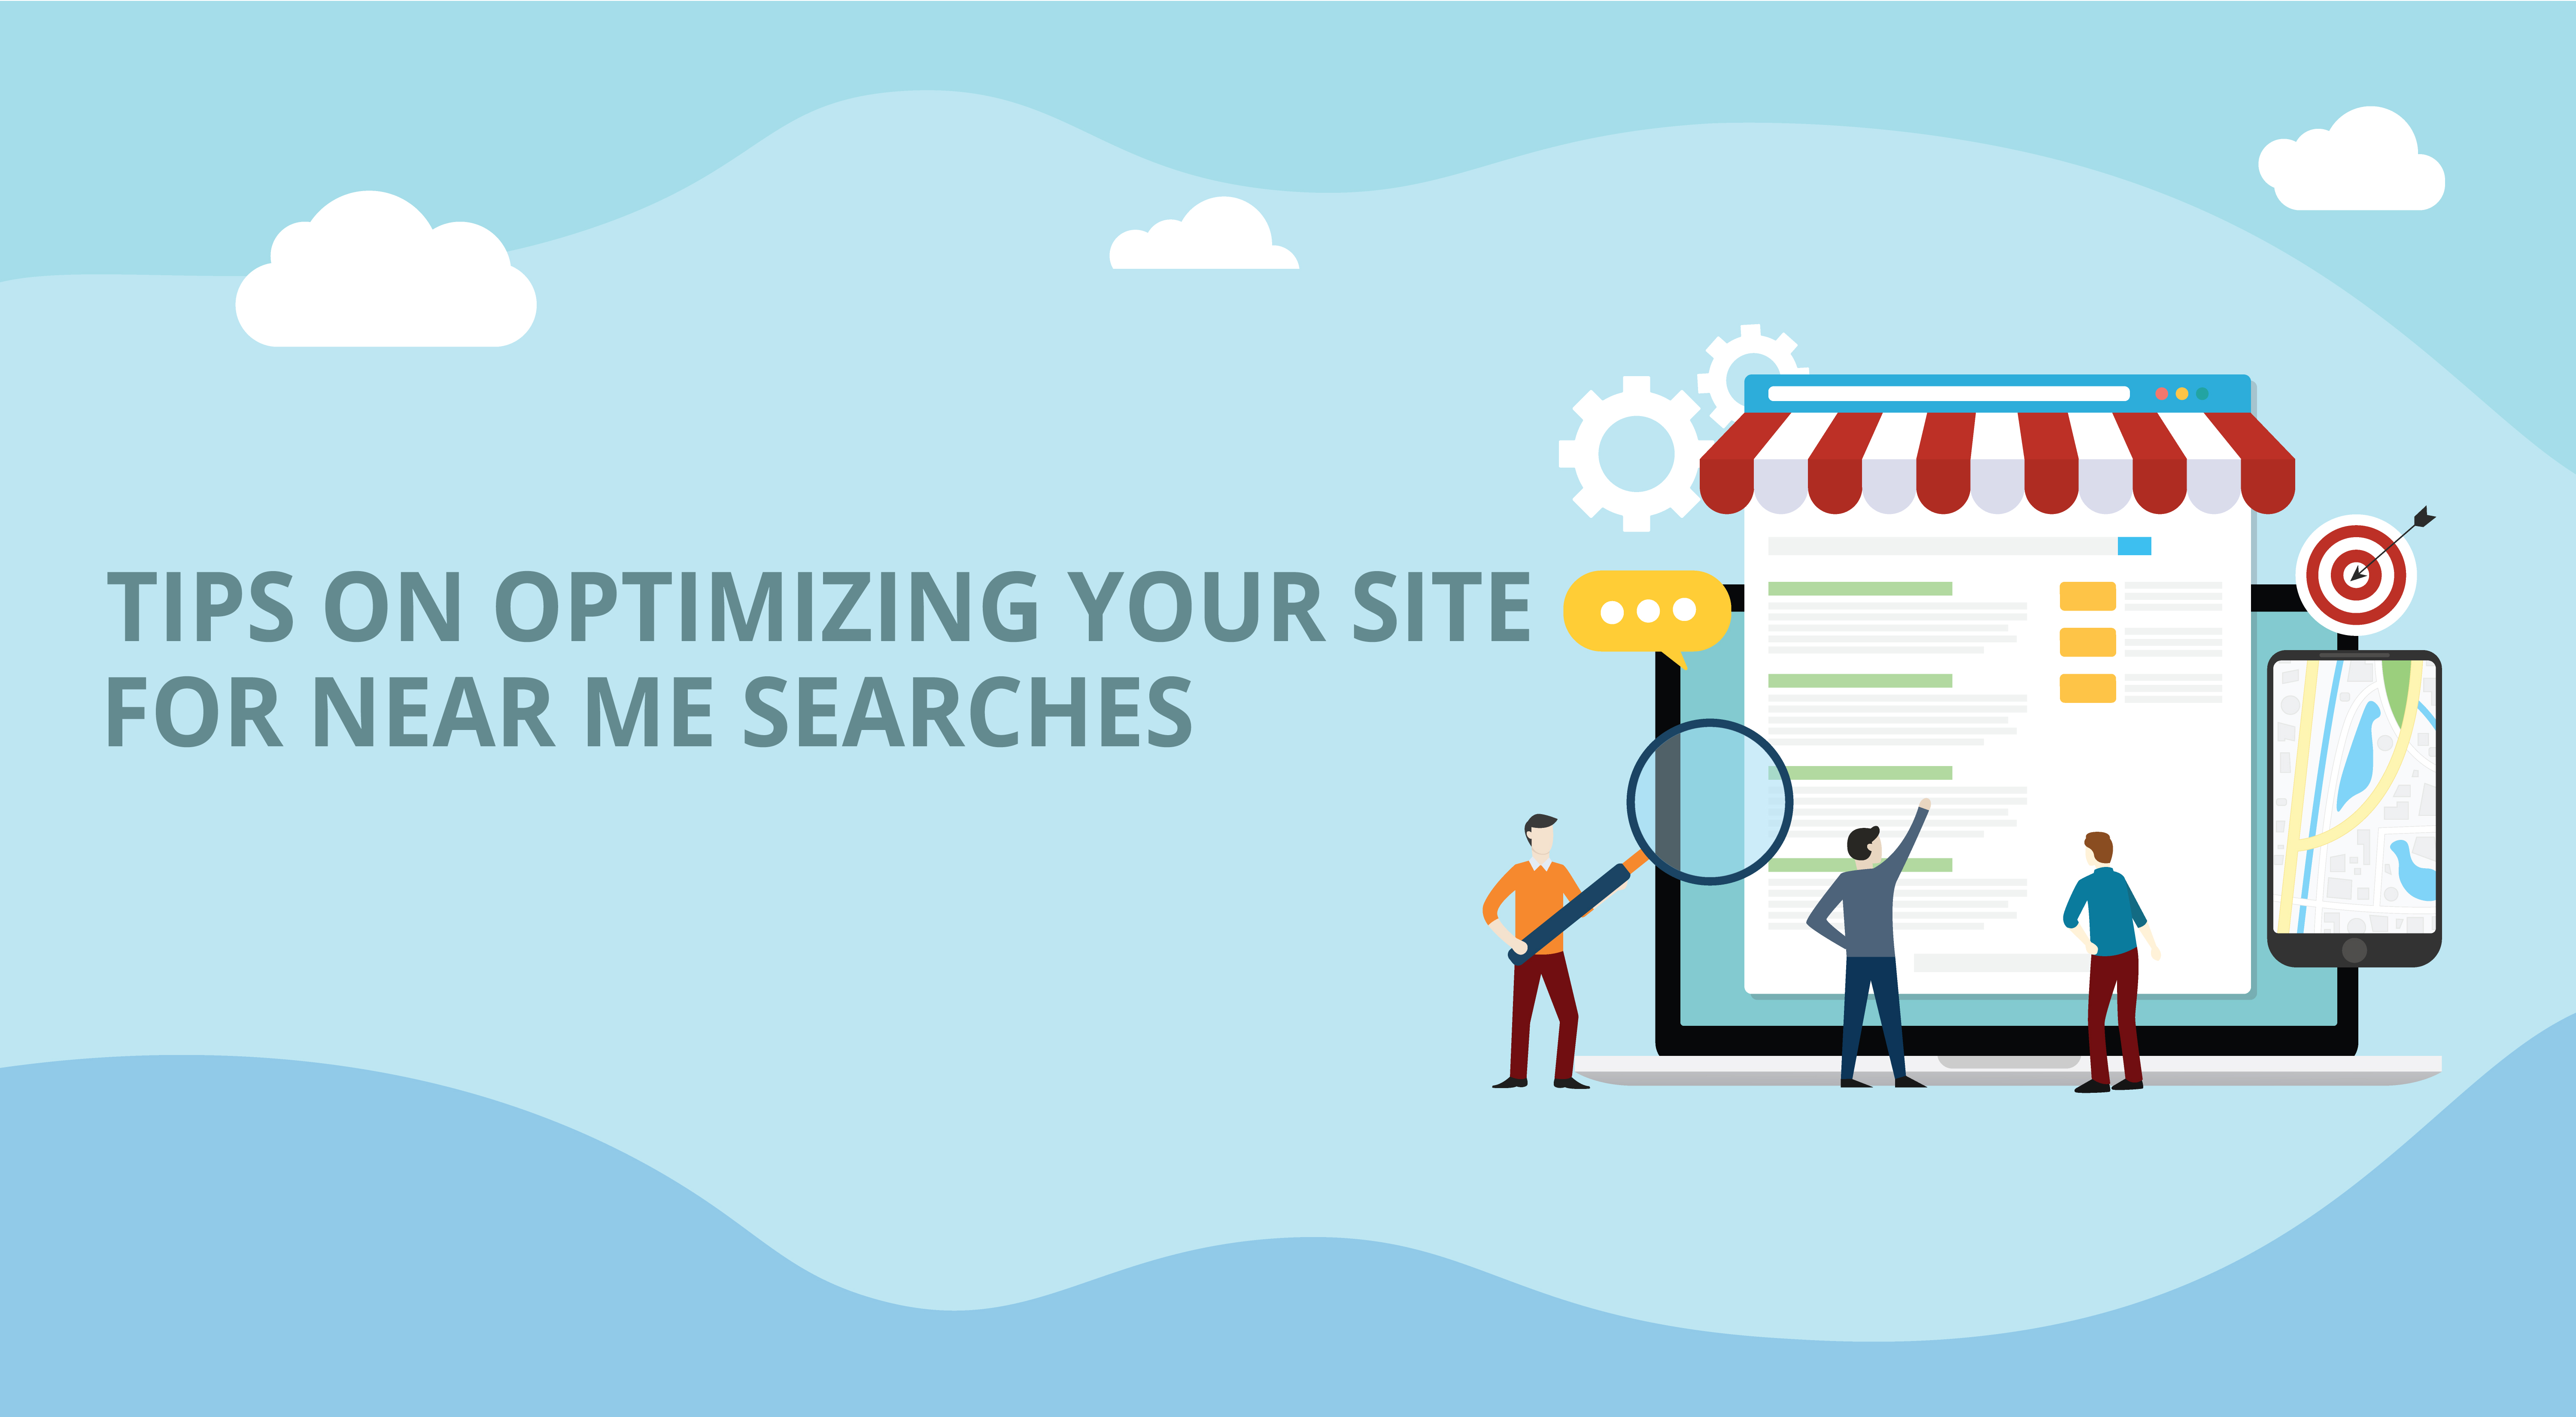 Image of Tips on Optimizing near me searches